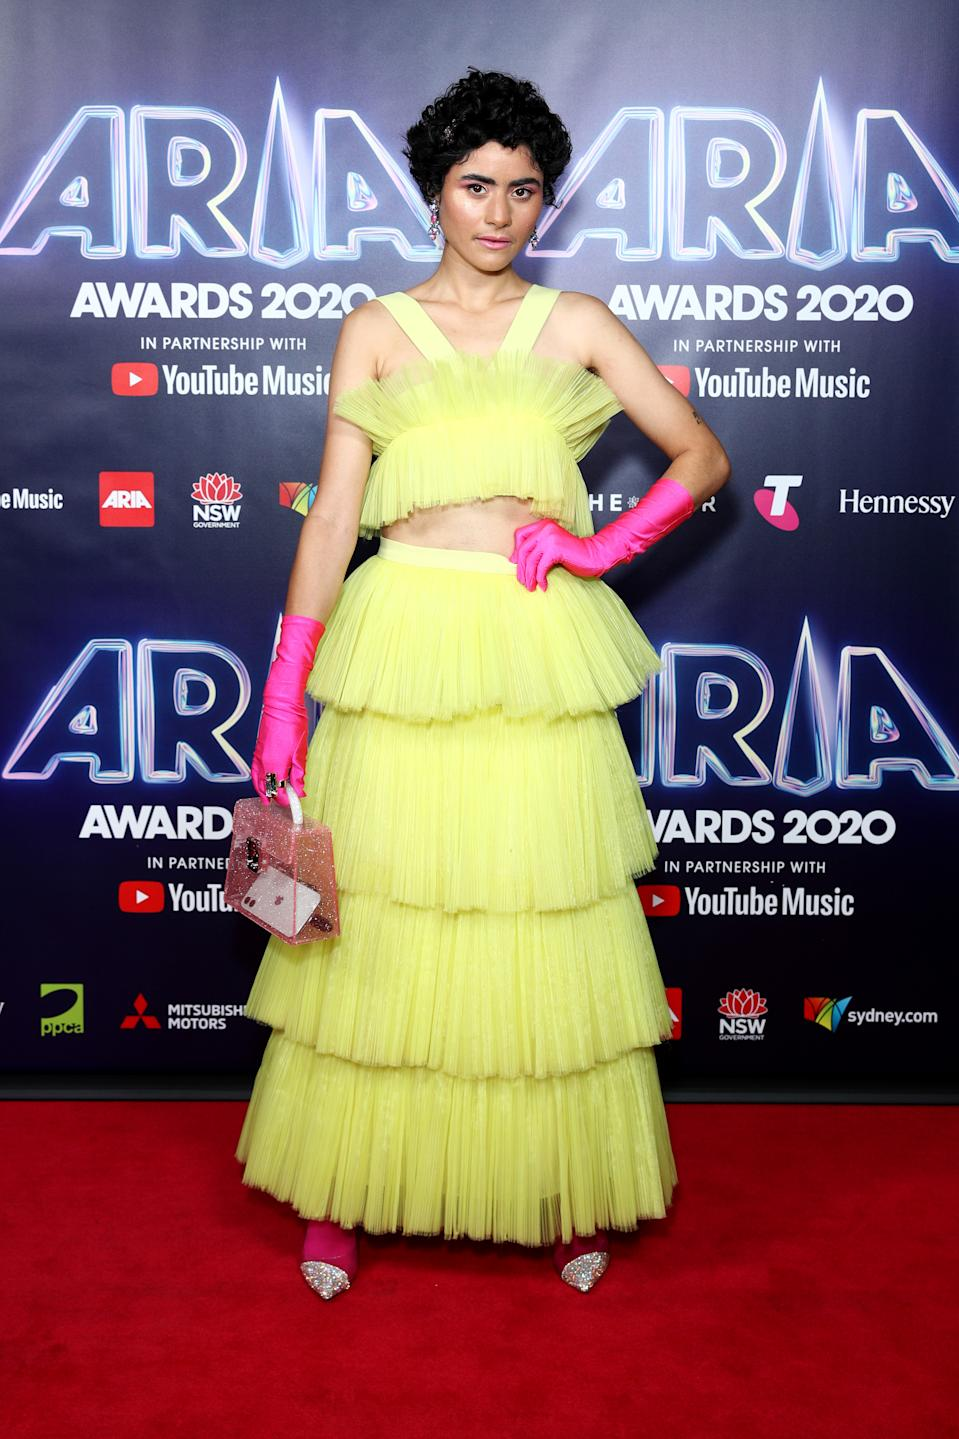 Montaigne wears a yellow tulle skirt and top with hot pink gloves and shoes on the red carpet at the 2020 ARIA Awards at The Star on November 25, 2020 in Sydney, Australia.